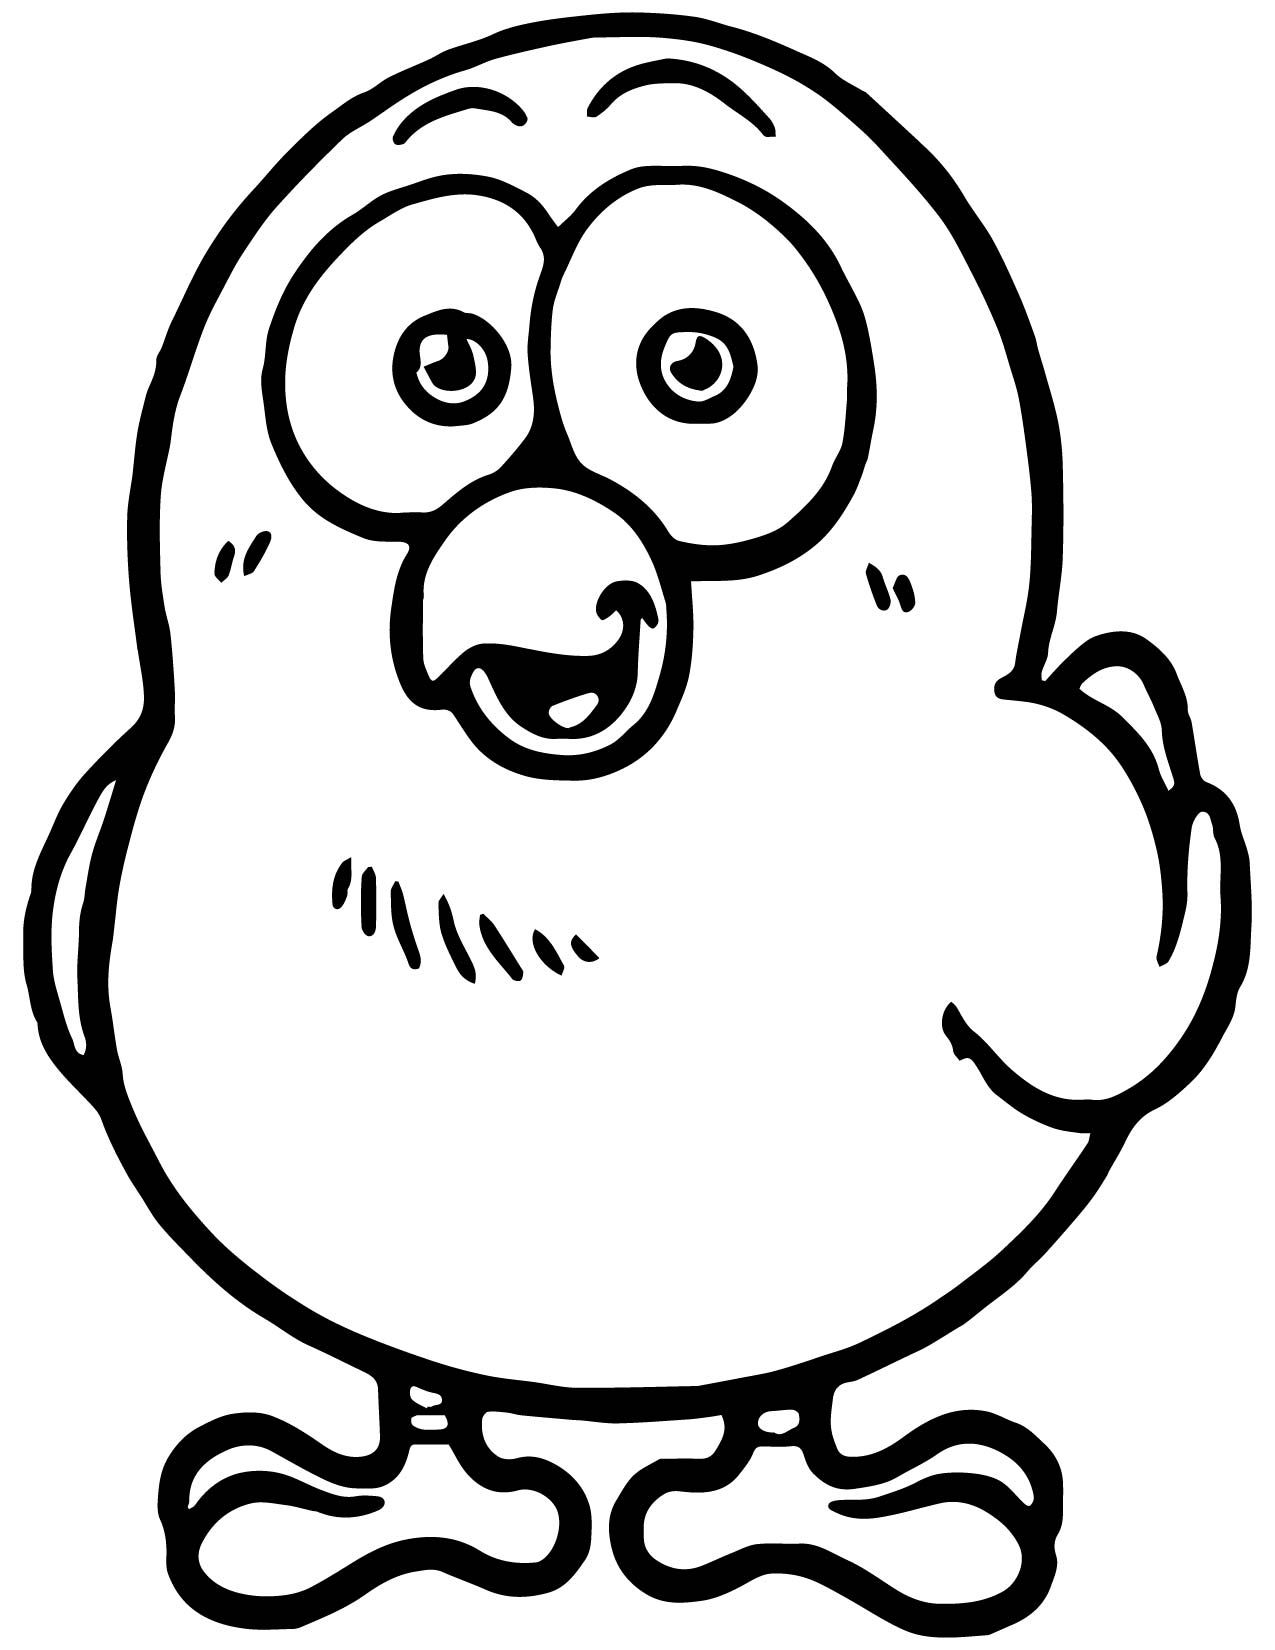 Awesome Cartoon Cute Chicken Coloring Page Chicken Coloring